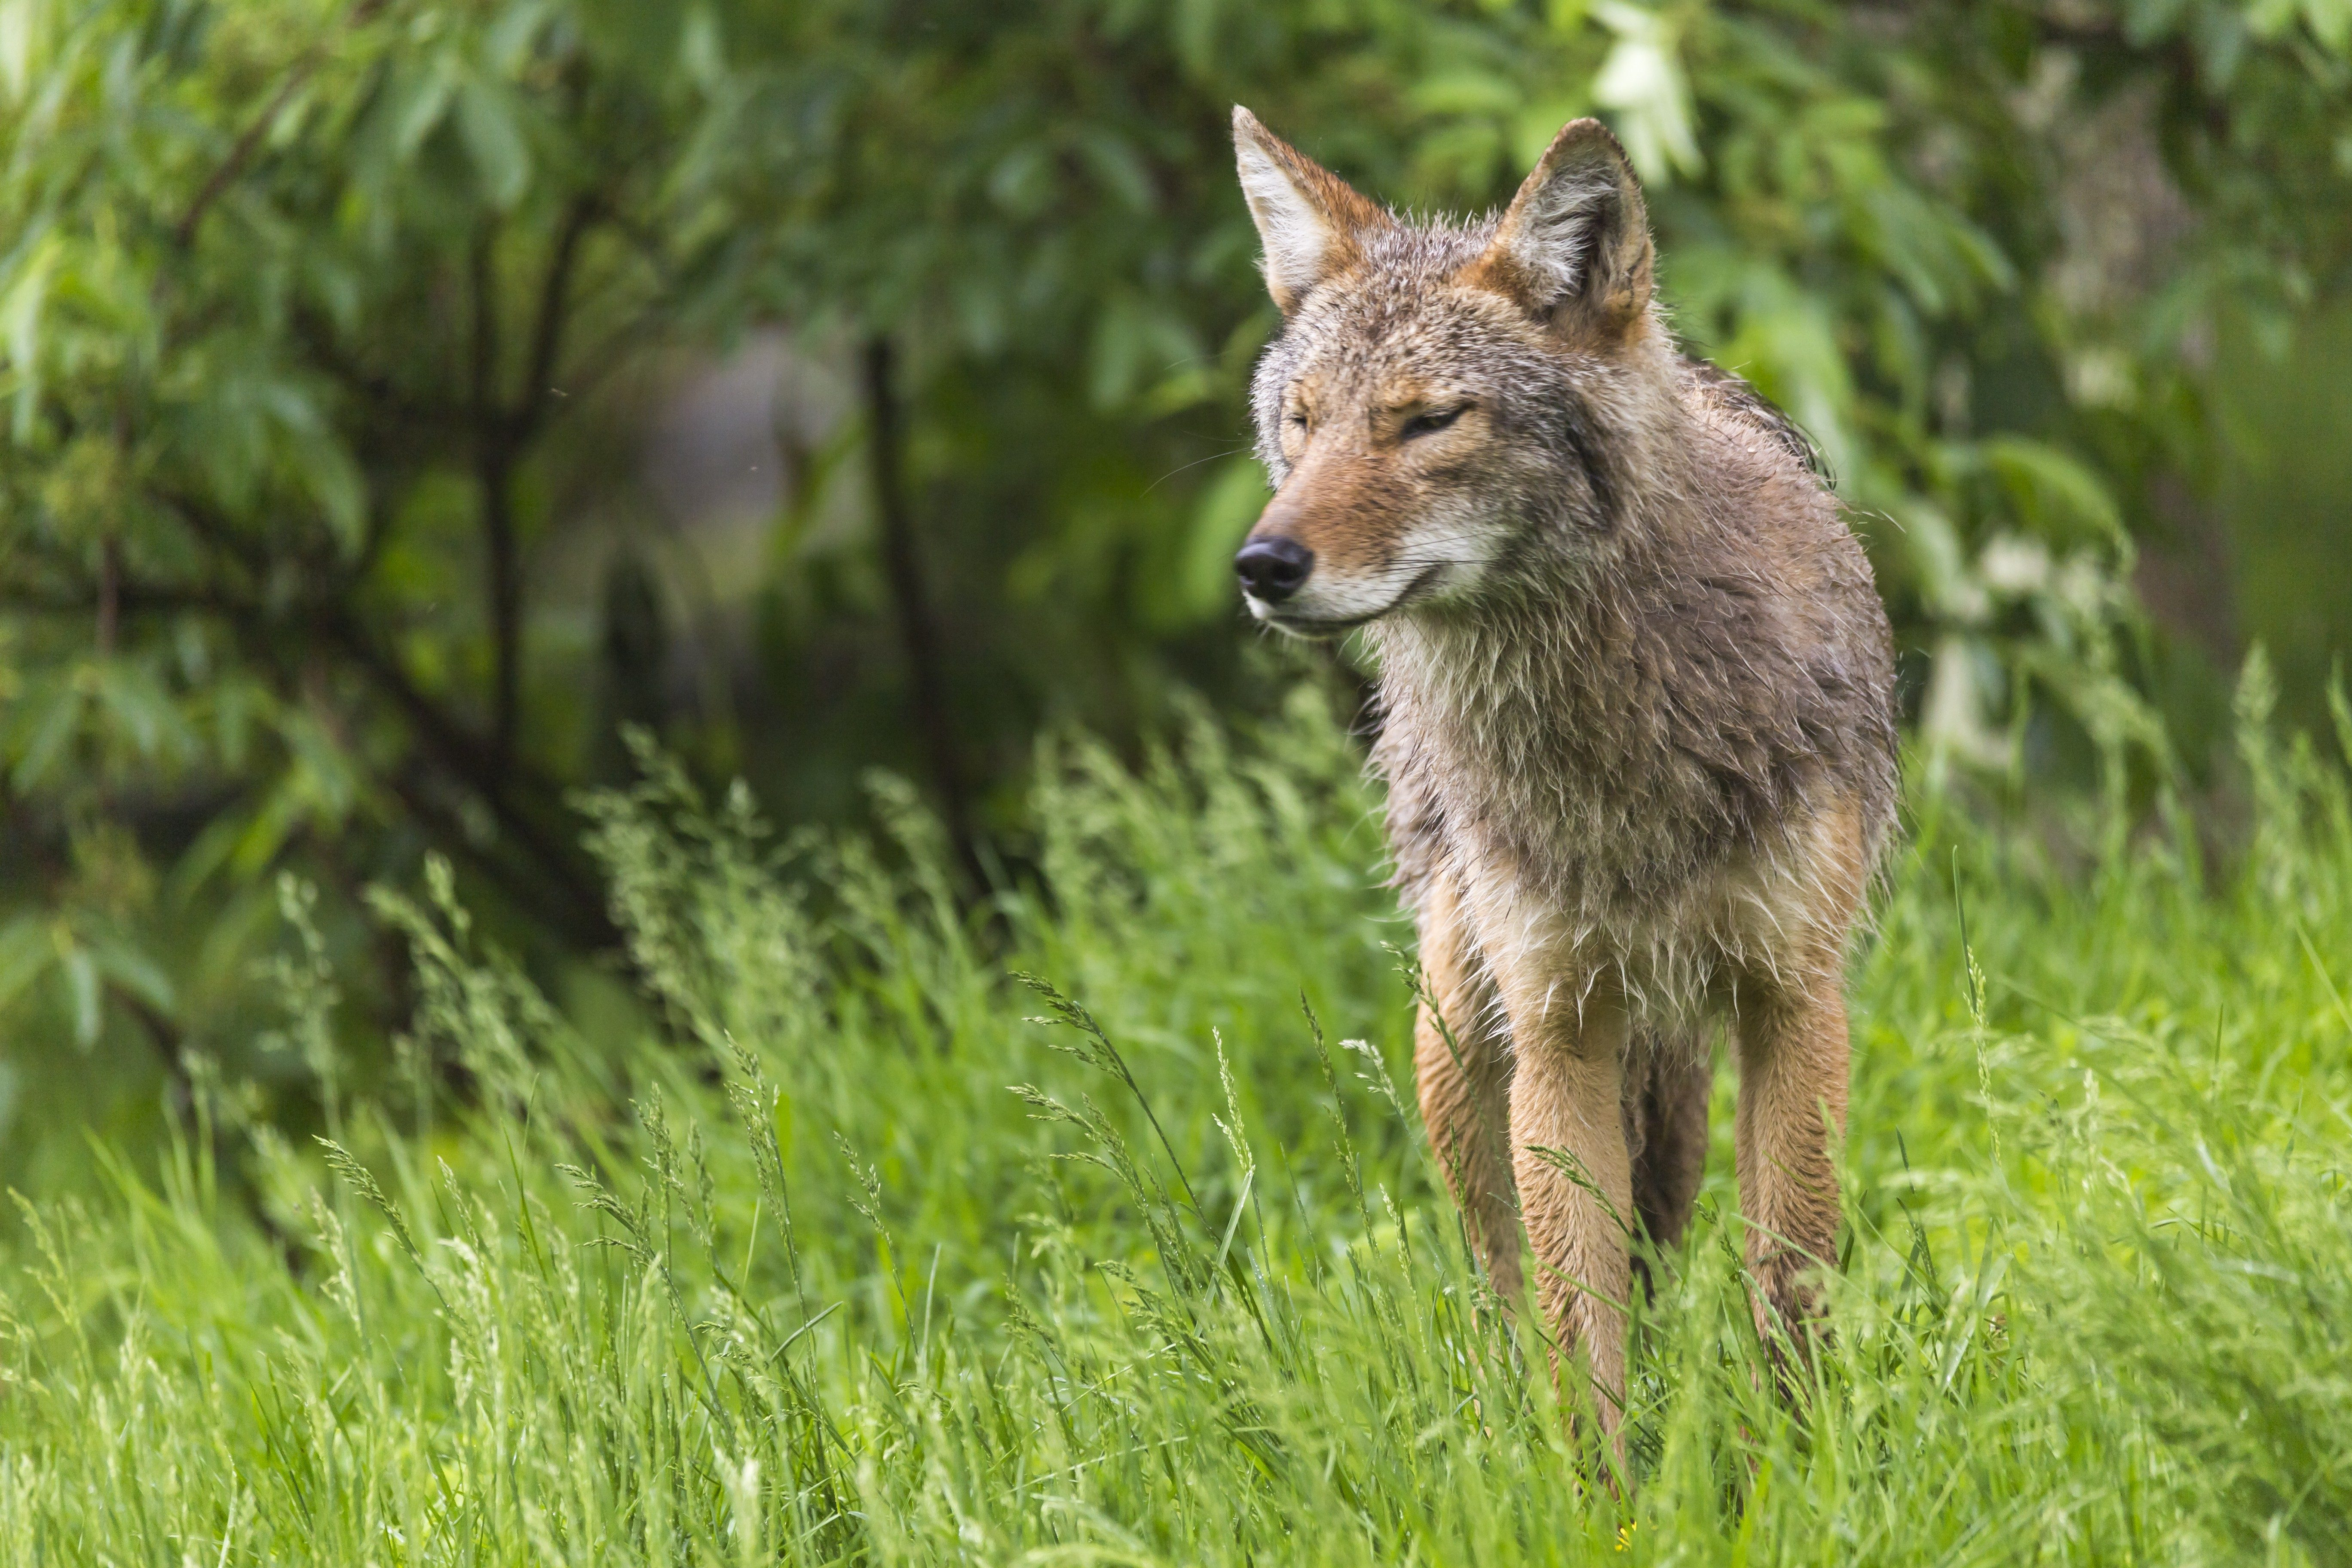 A lone coyote in a forest